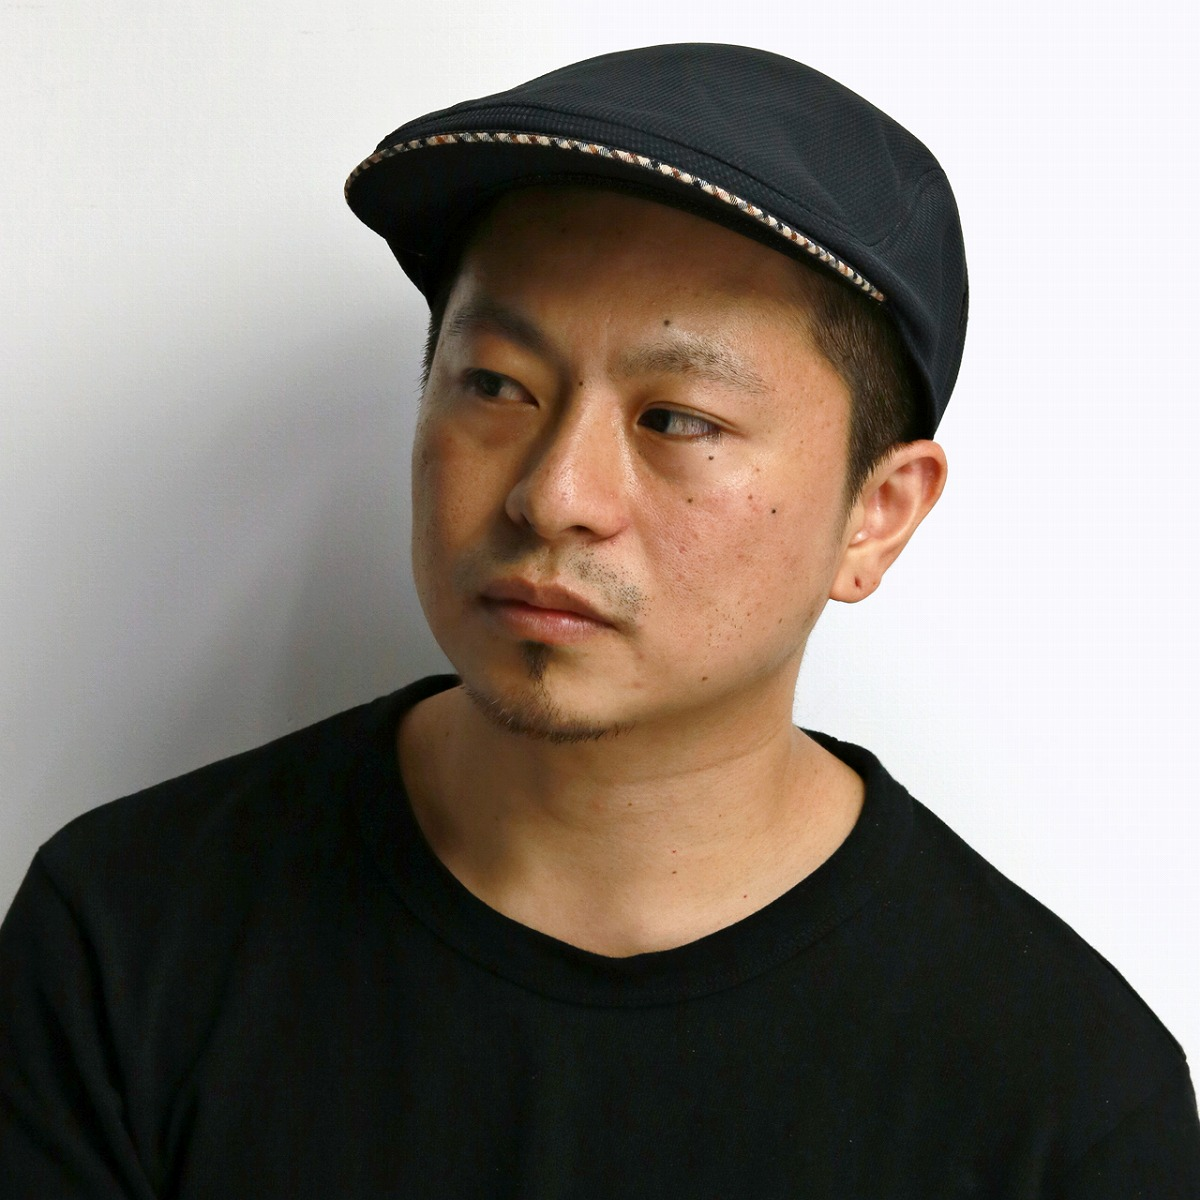 95f28bc47ca It is a gift present hat mail order in brand monotone black black  ivy cap   Father s Day in Daks hunting cap men cool feeling cool max picket DAKS  hunting ...